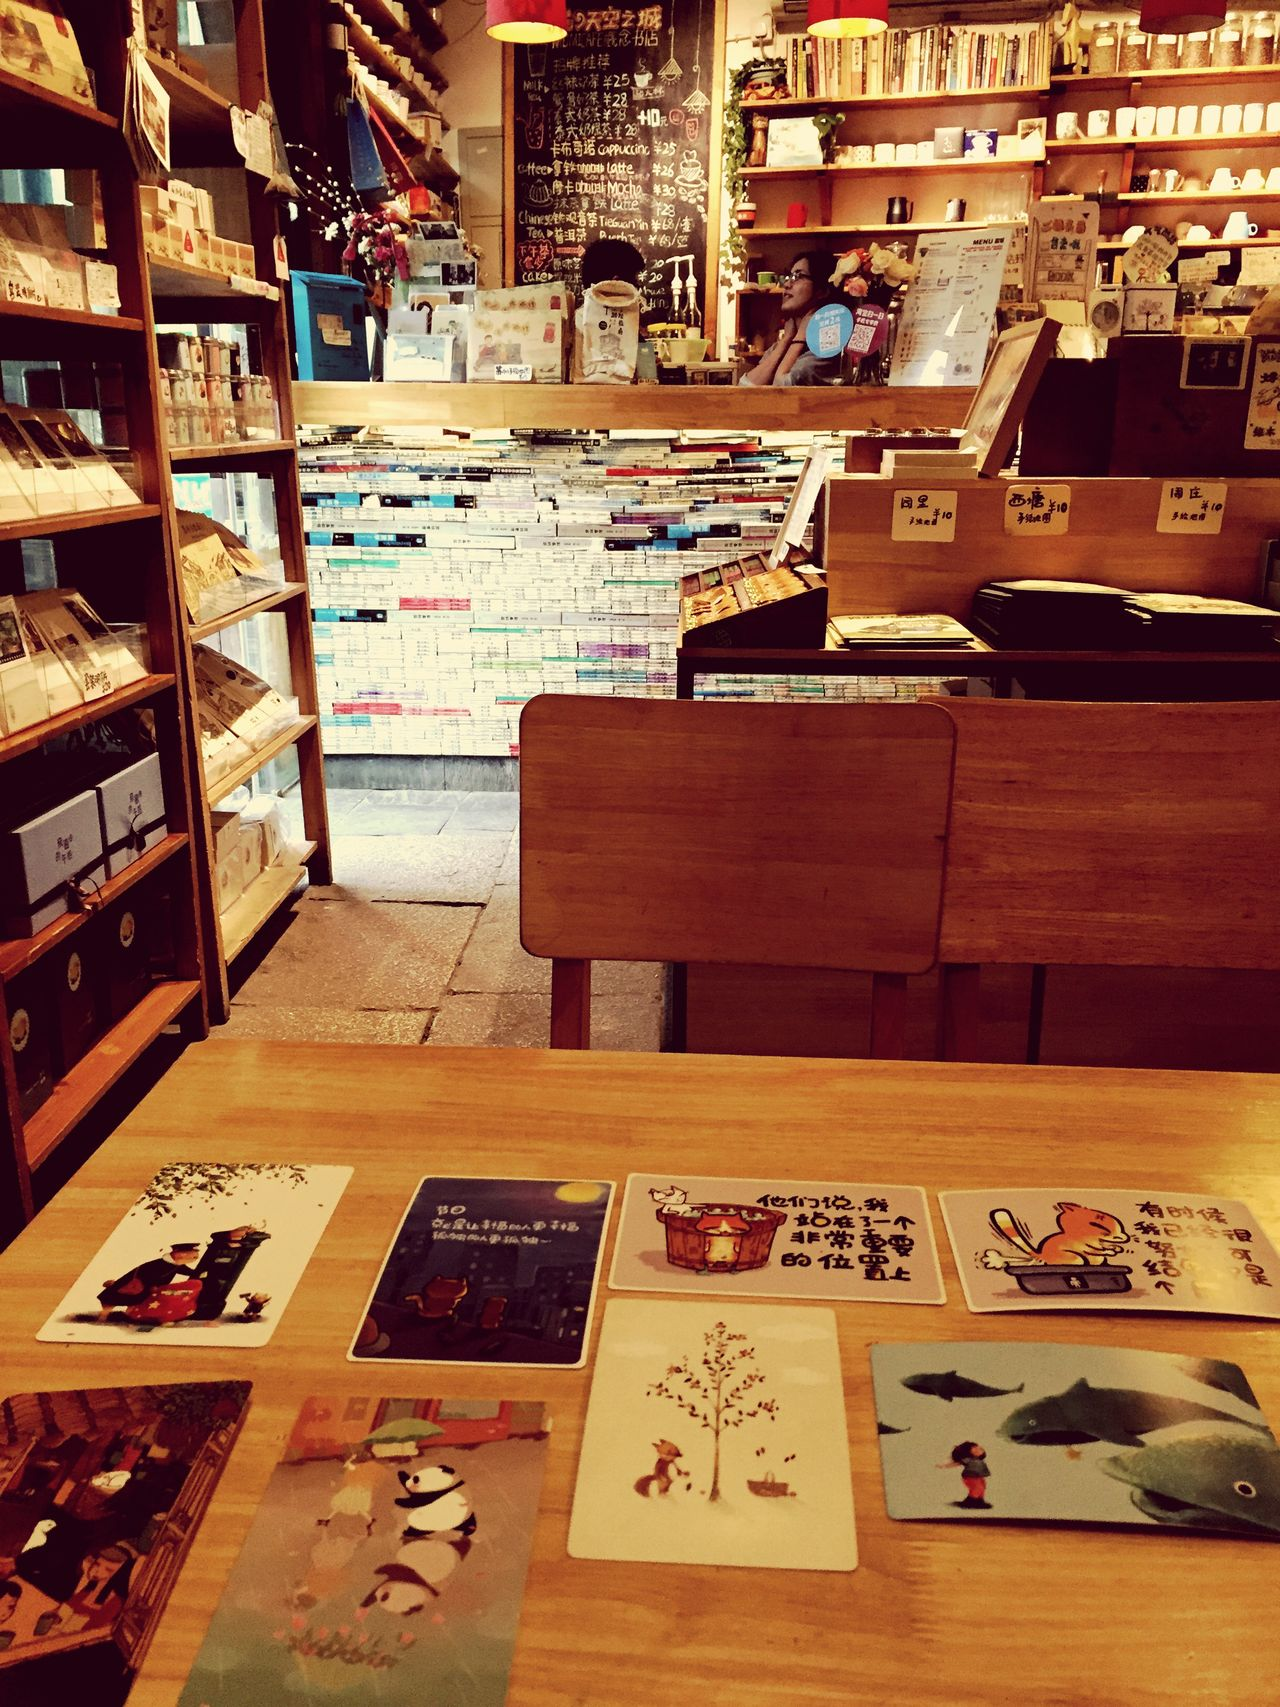 April 2015. Suzhou PIngjiang Road China Cafe Interior Design Interior Hipster Cosy Chinese Girl Cafe Time